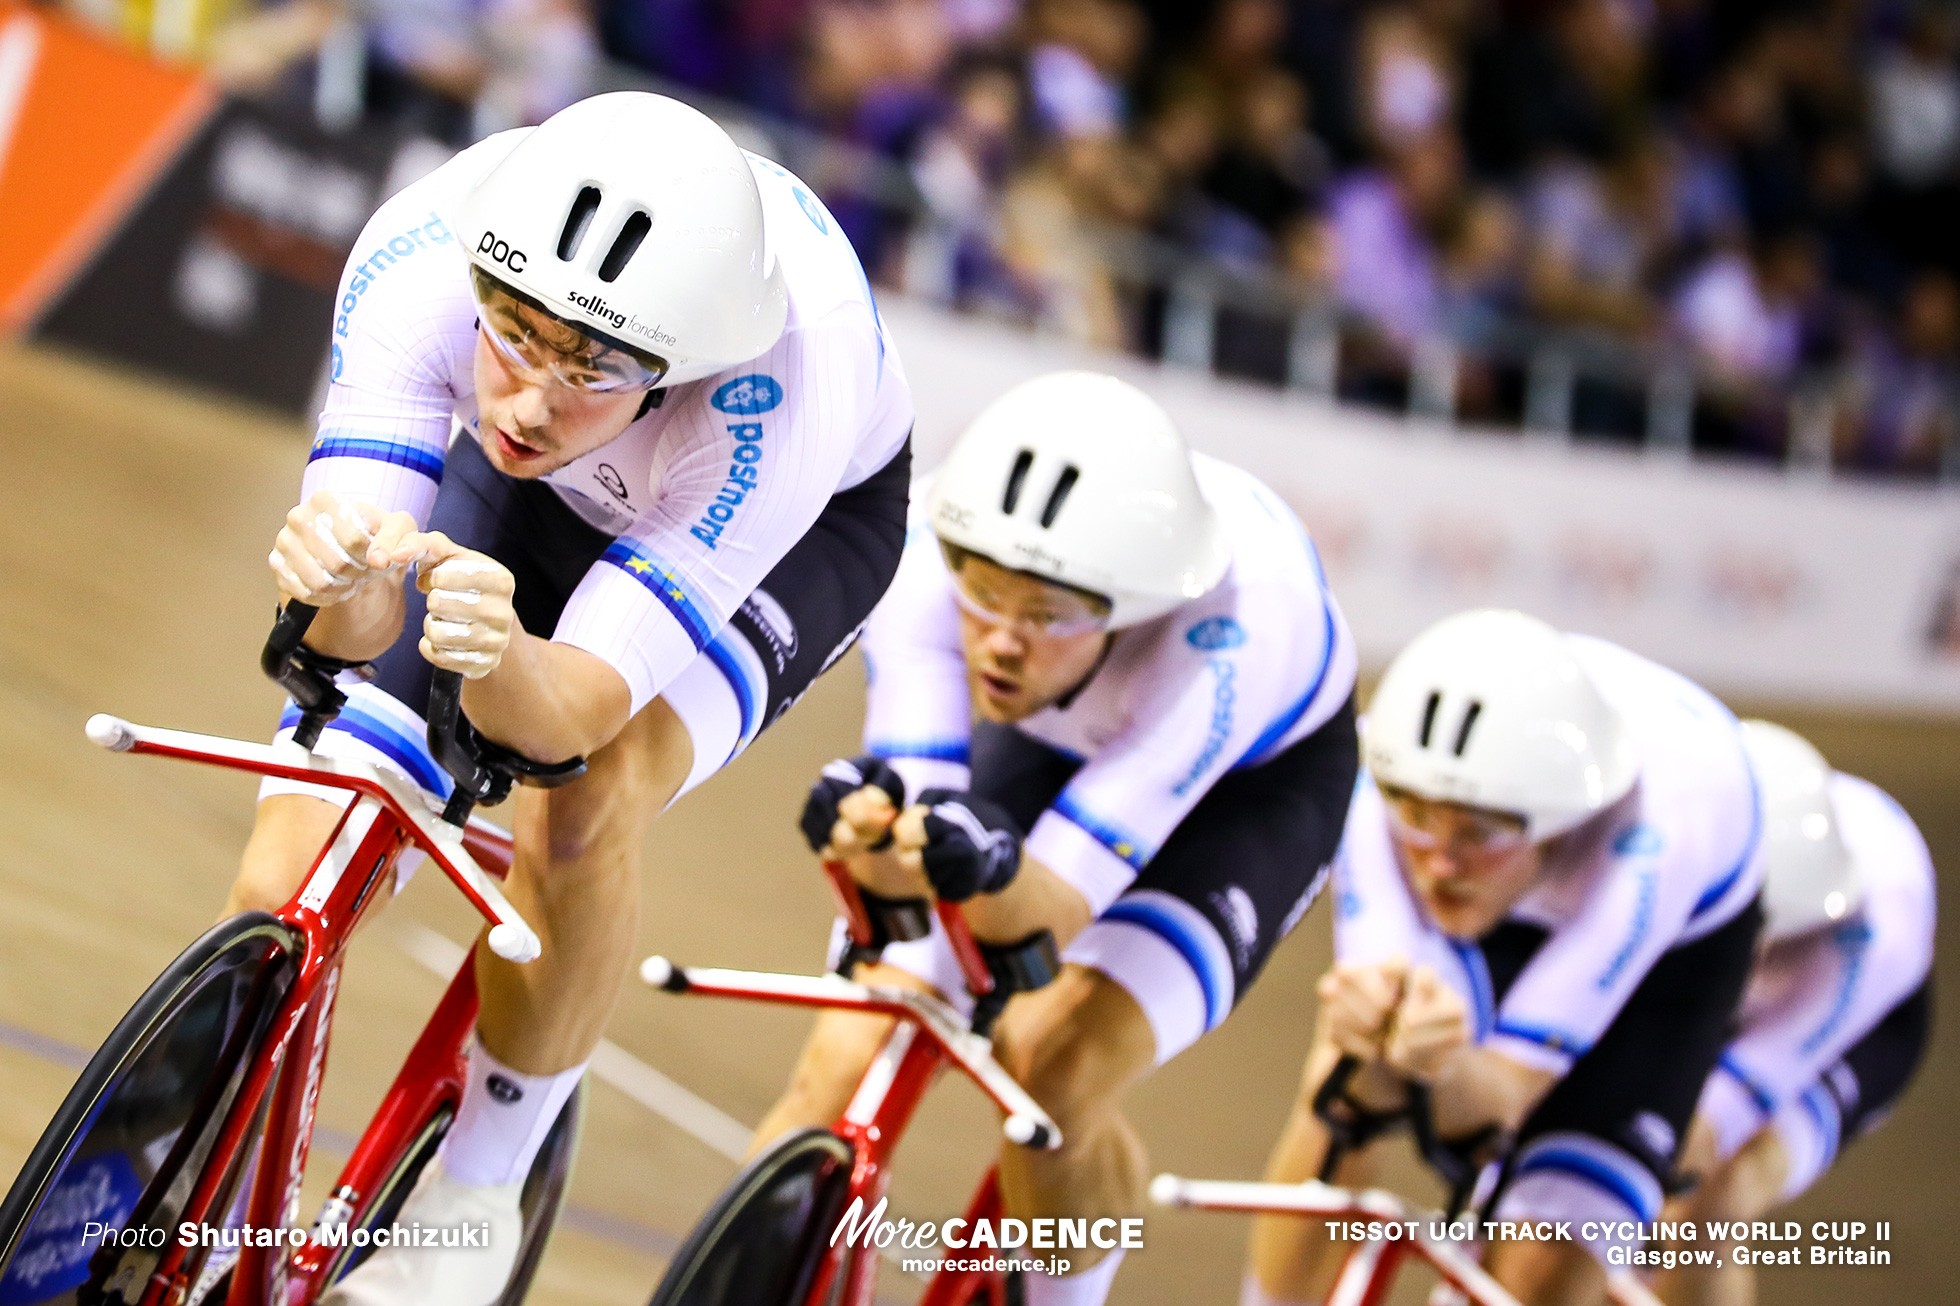 Denmark / Men's Team Pursuit / TISSOT UCI TRACK CYCLING WORLD CUP II, Glasgow, Great Britain